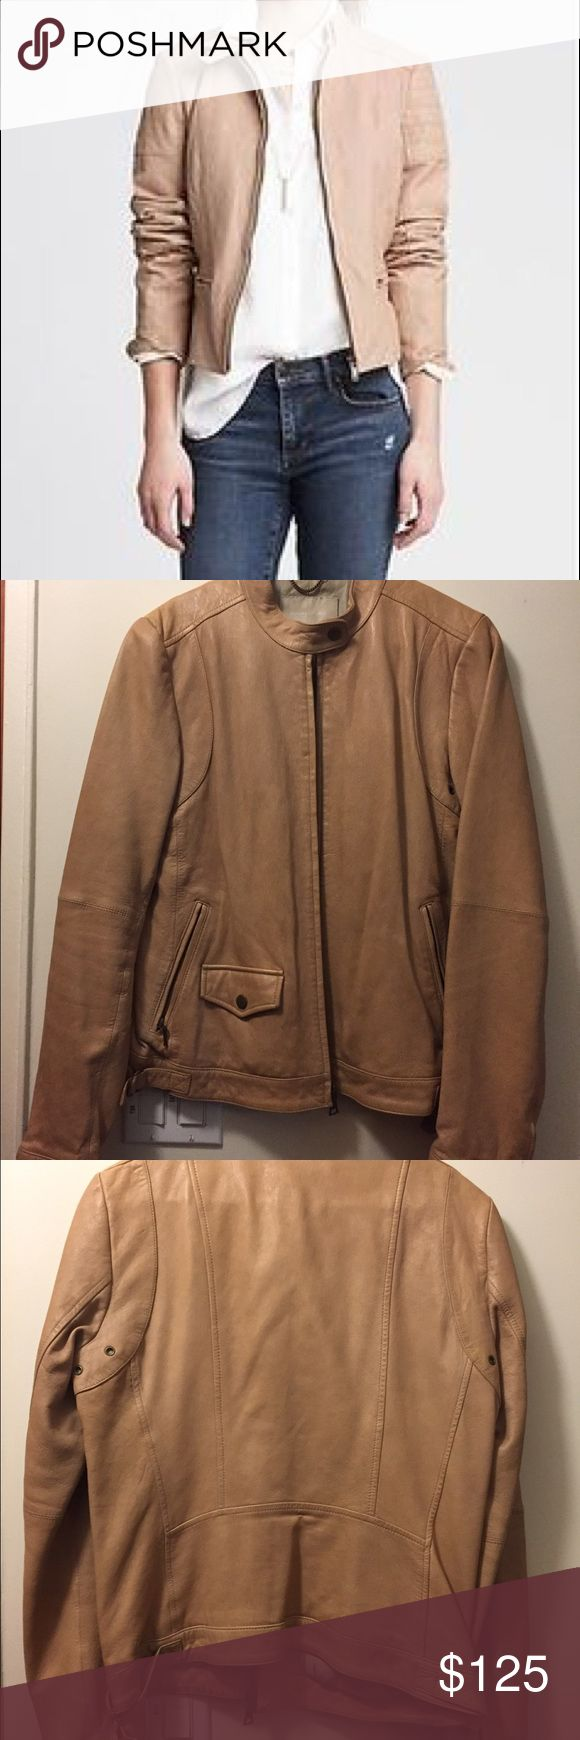 Banana Republic tan leather jacket Buttery smooth leather jacket, worn for a season but well taken care of Banana Republic Jackets & Coats Utility Jackets